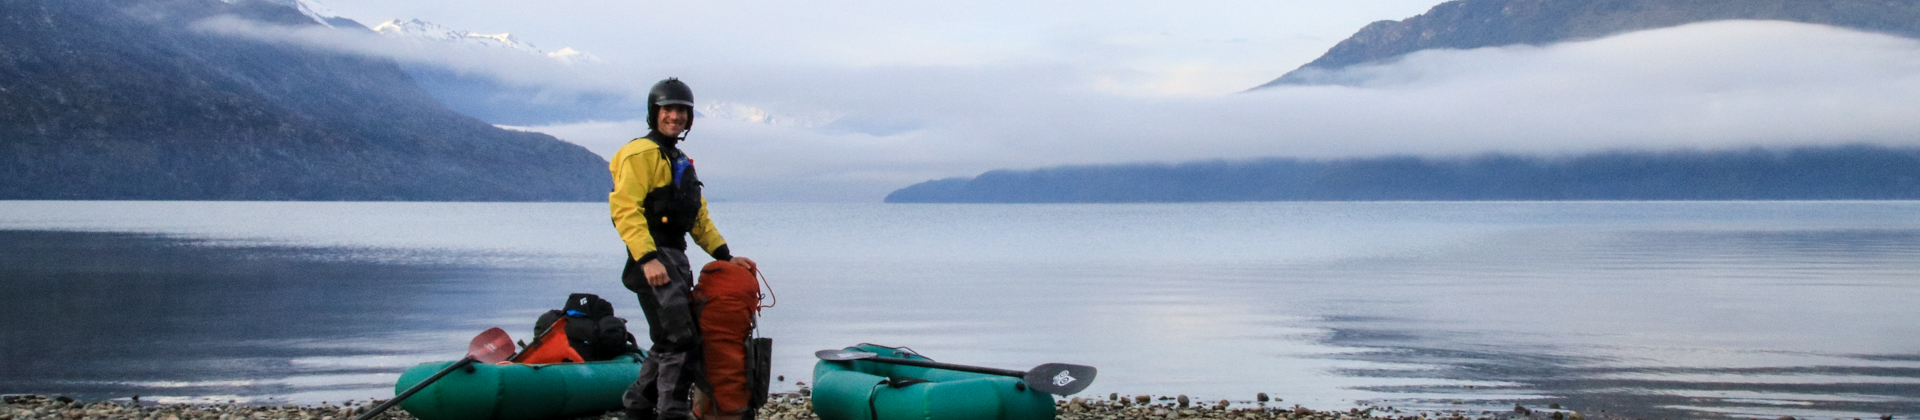 Patagonia Packraft Expedition by Boreal River Adventures - Image 399